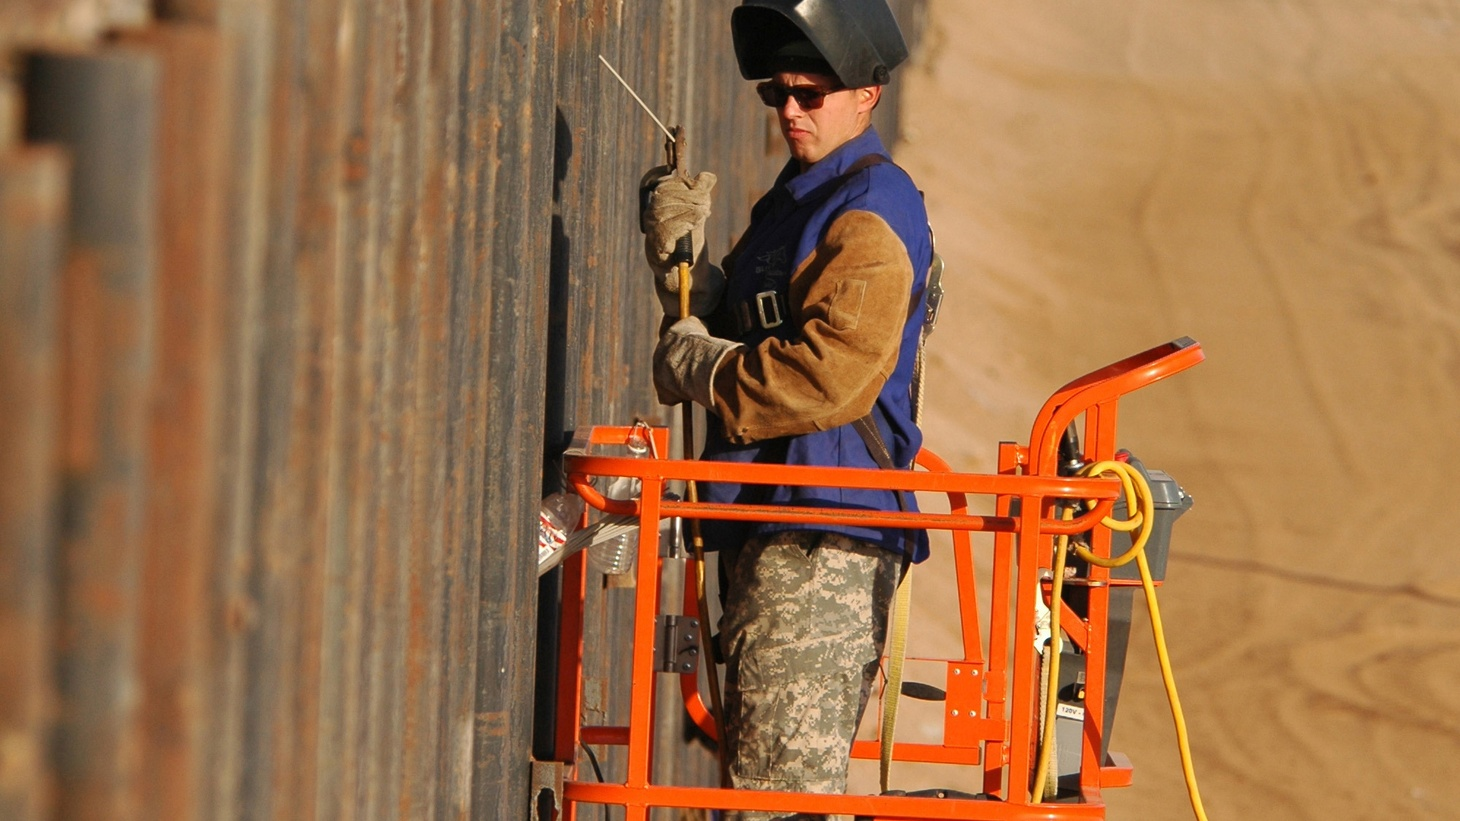 US Army Spc. Michael J. Westall uses a motorized boom lift to get into  position to weld the reinforcement of the primary steel border fence  along the United States-Mexico border on June 7, 2007.  Photo by Senior Master Sgt. David H.